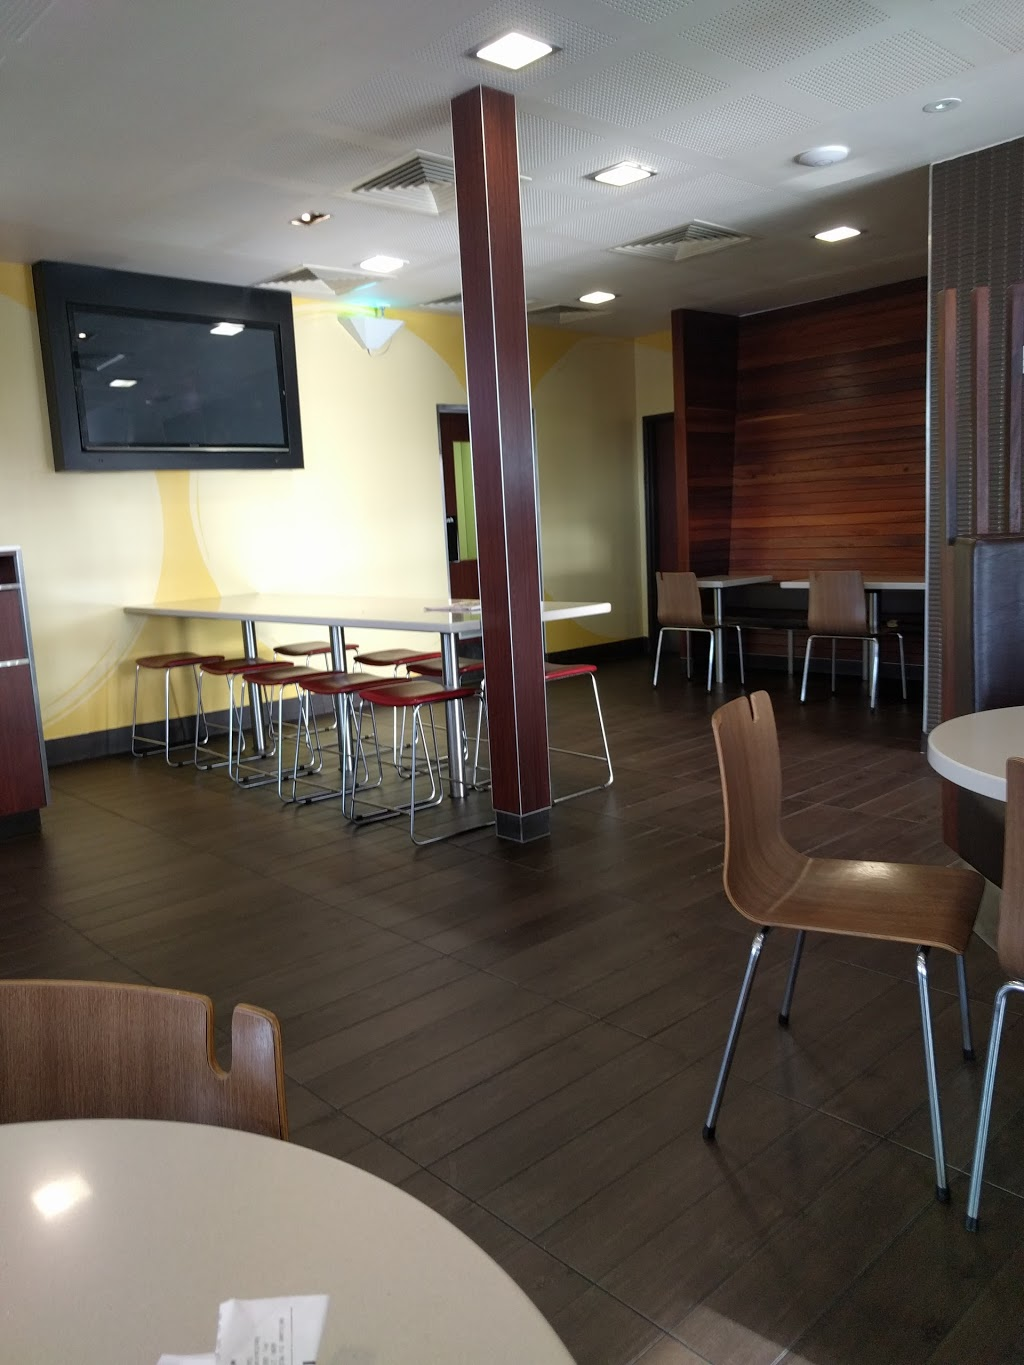 McDonalds Broadmeadows | cafe | 1171-1173 Pascoe Vale Rd, Broadmeadows VIC 3047, Australia | 0393099145 OR +61 3 9309 9145